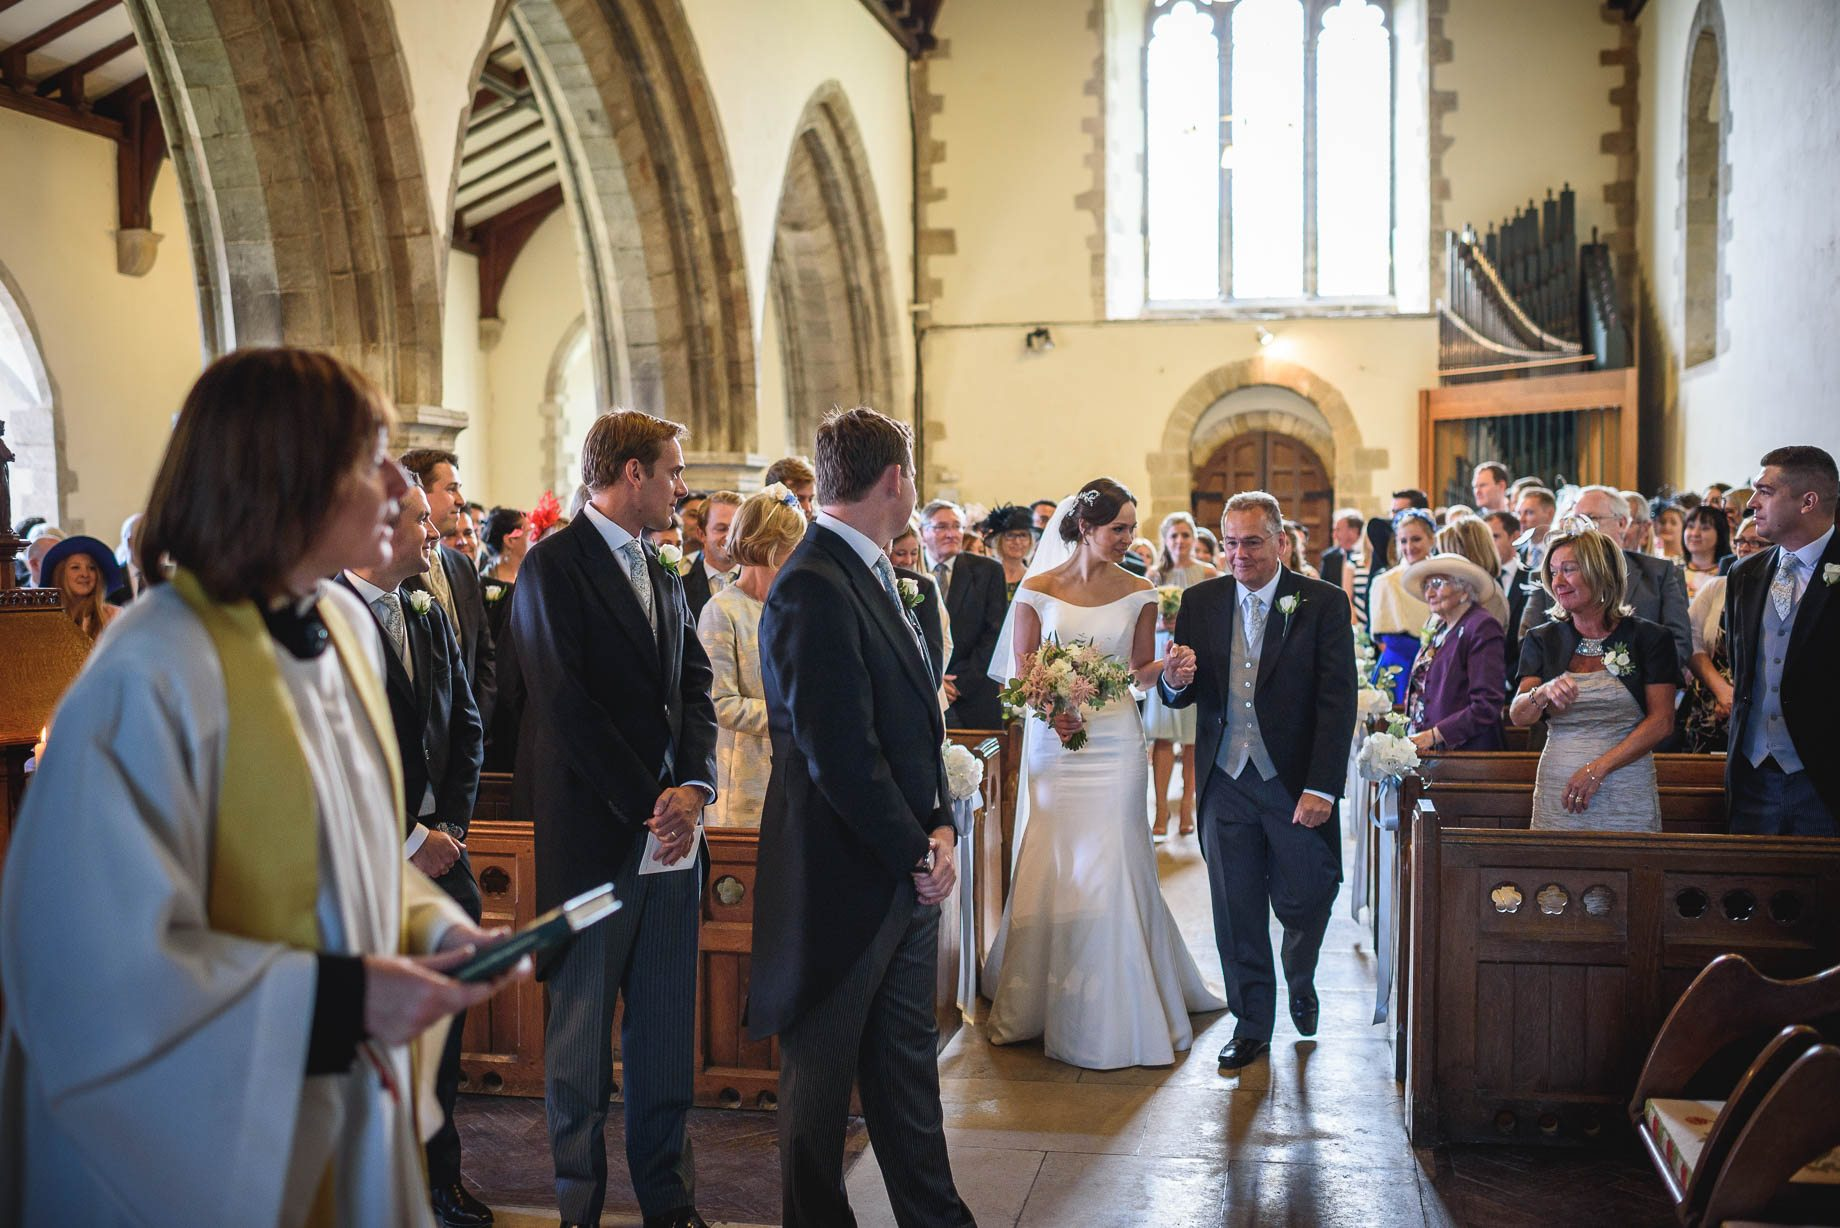 Tithe Barn wedding photography - Jayme and David (79 of 189)